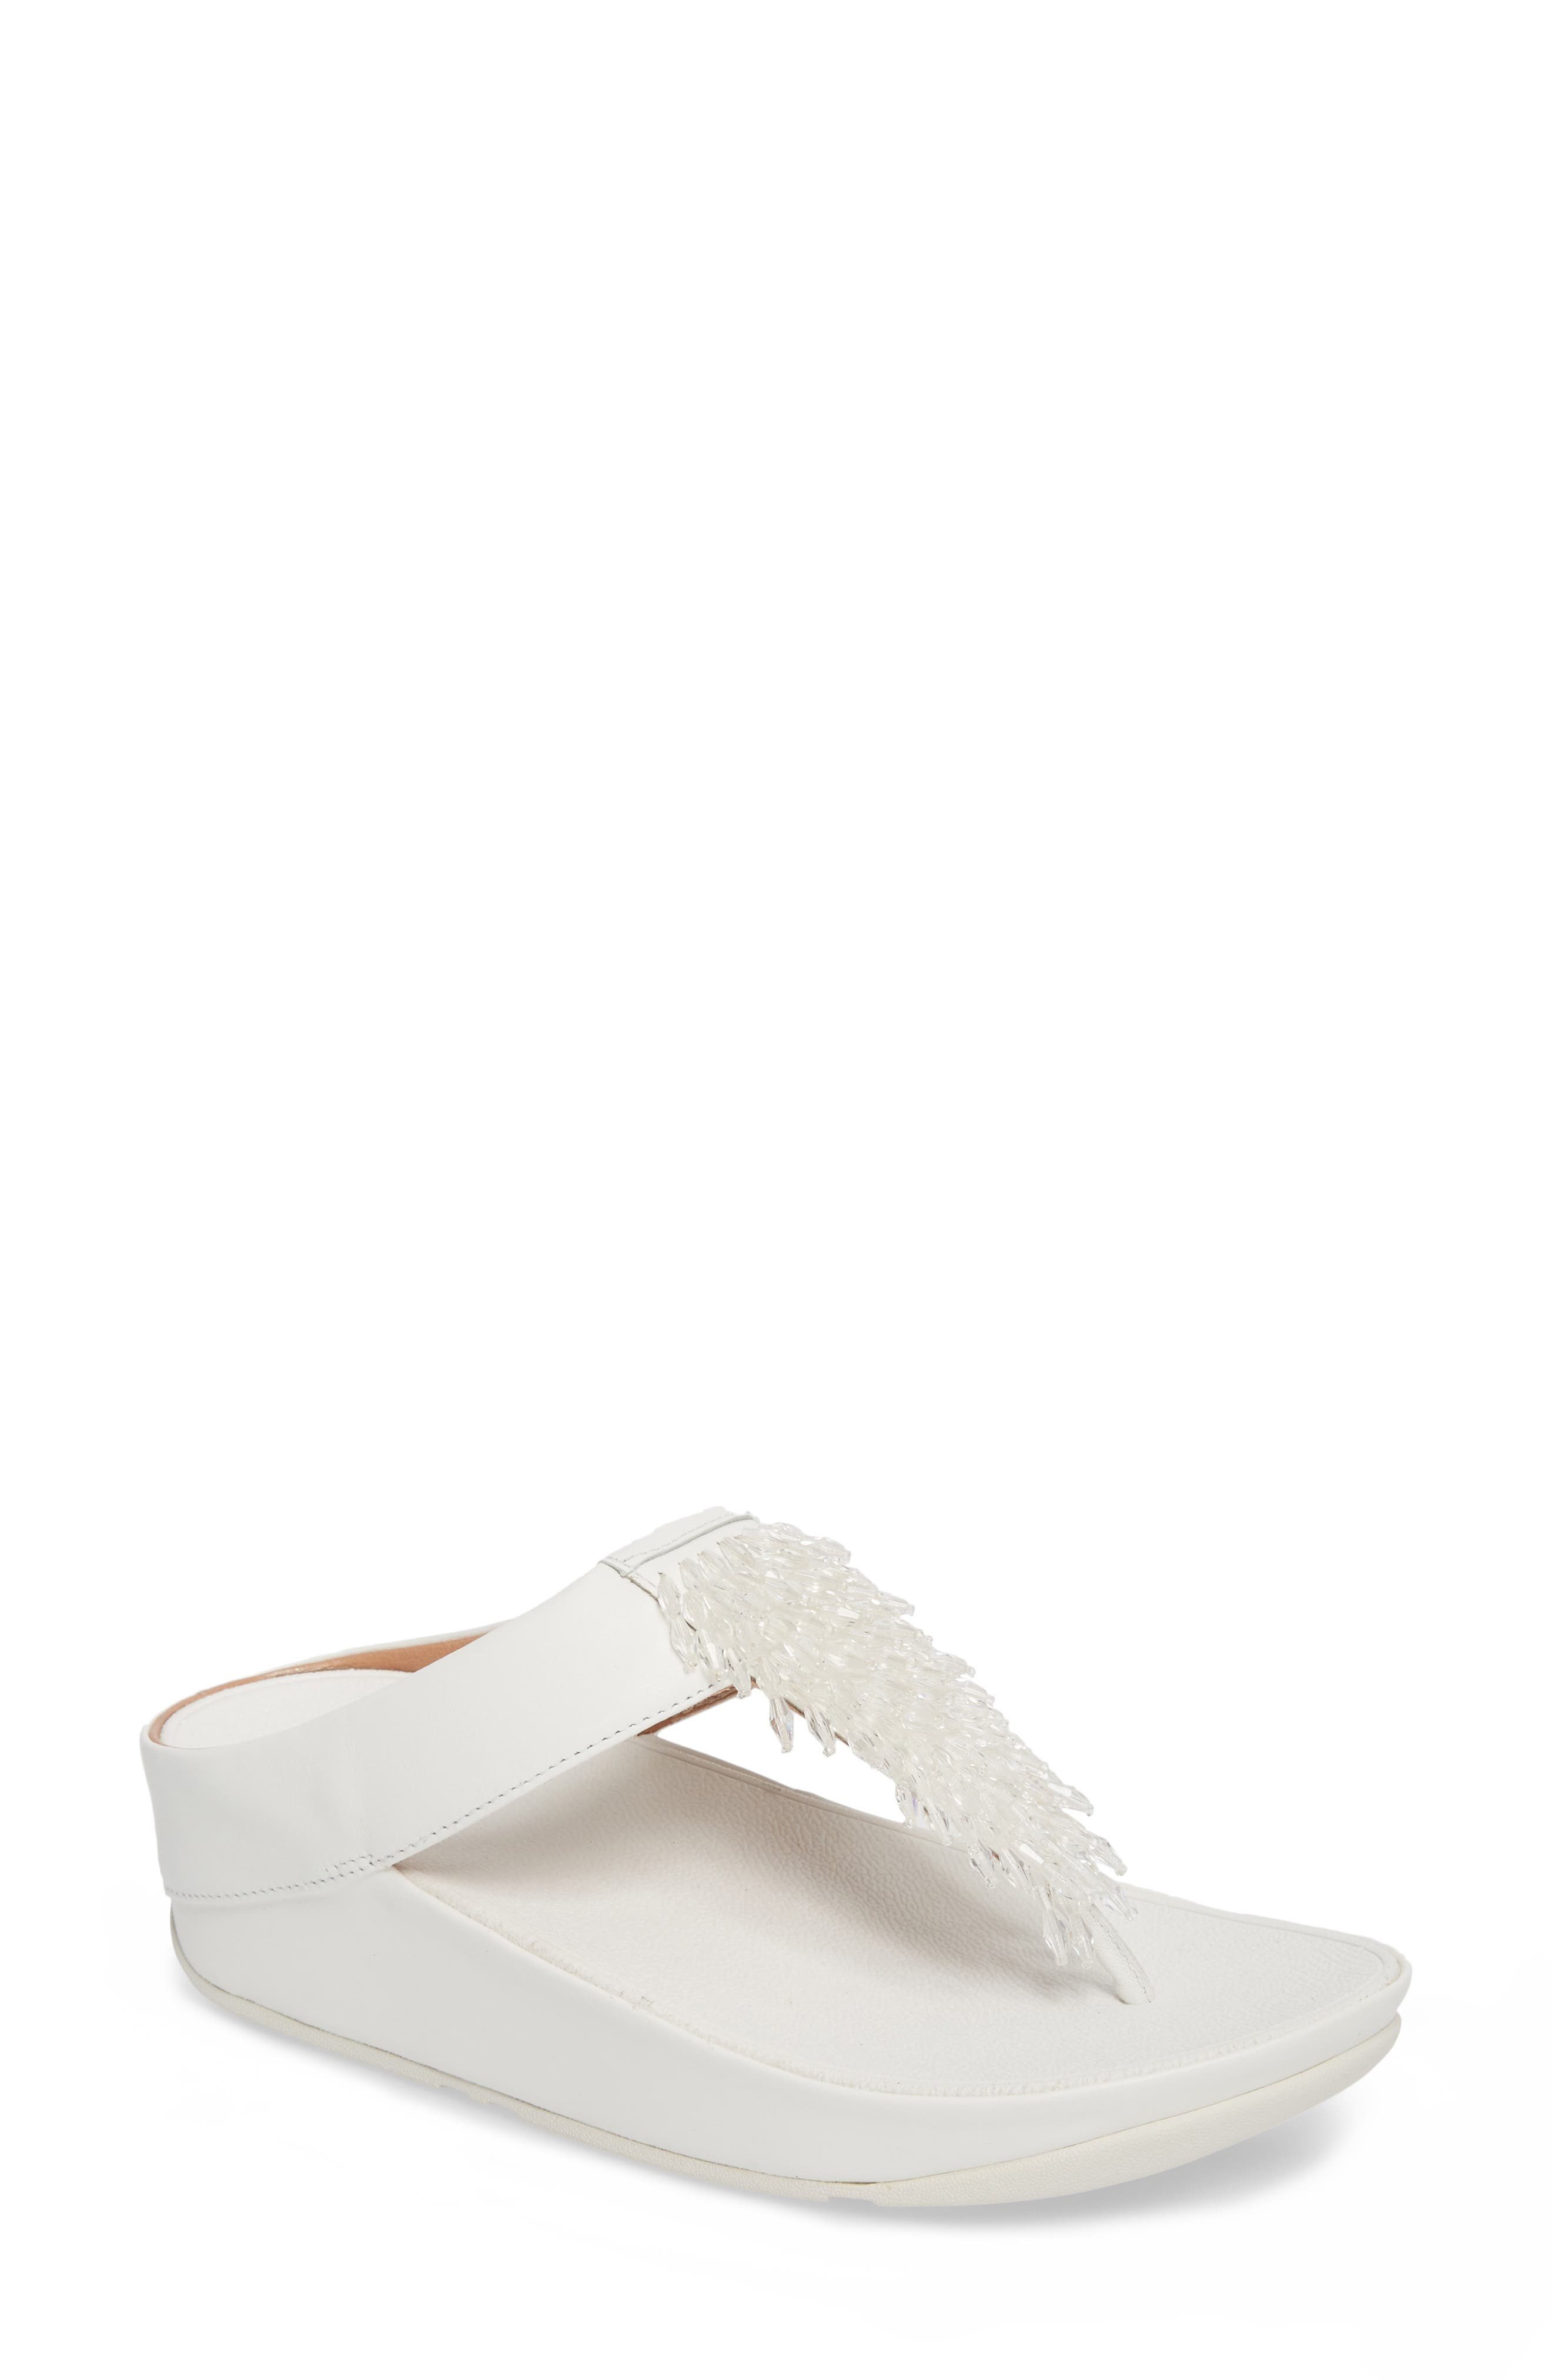 Fitflop Rumba Sandal, White